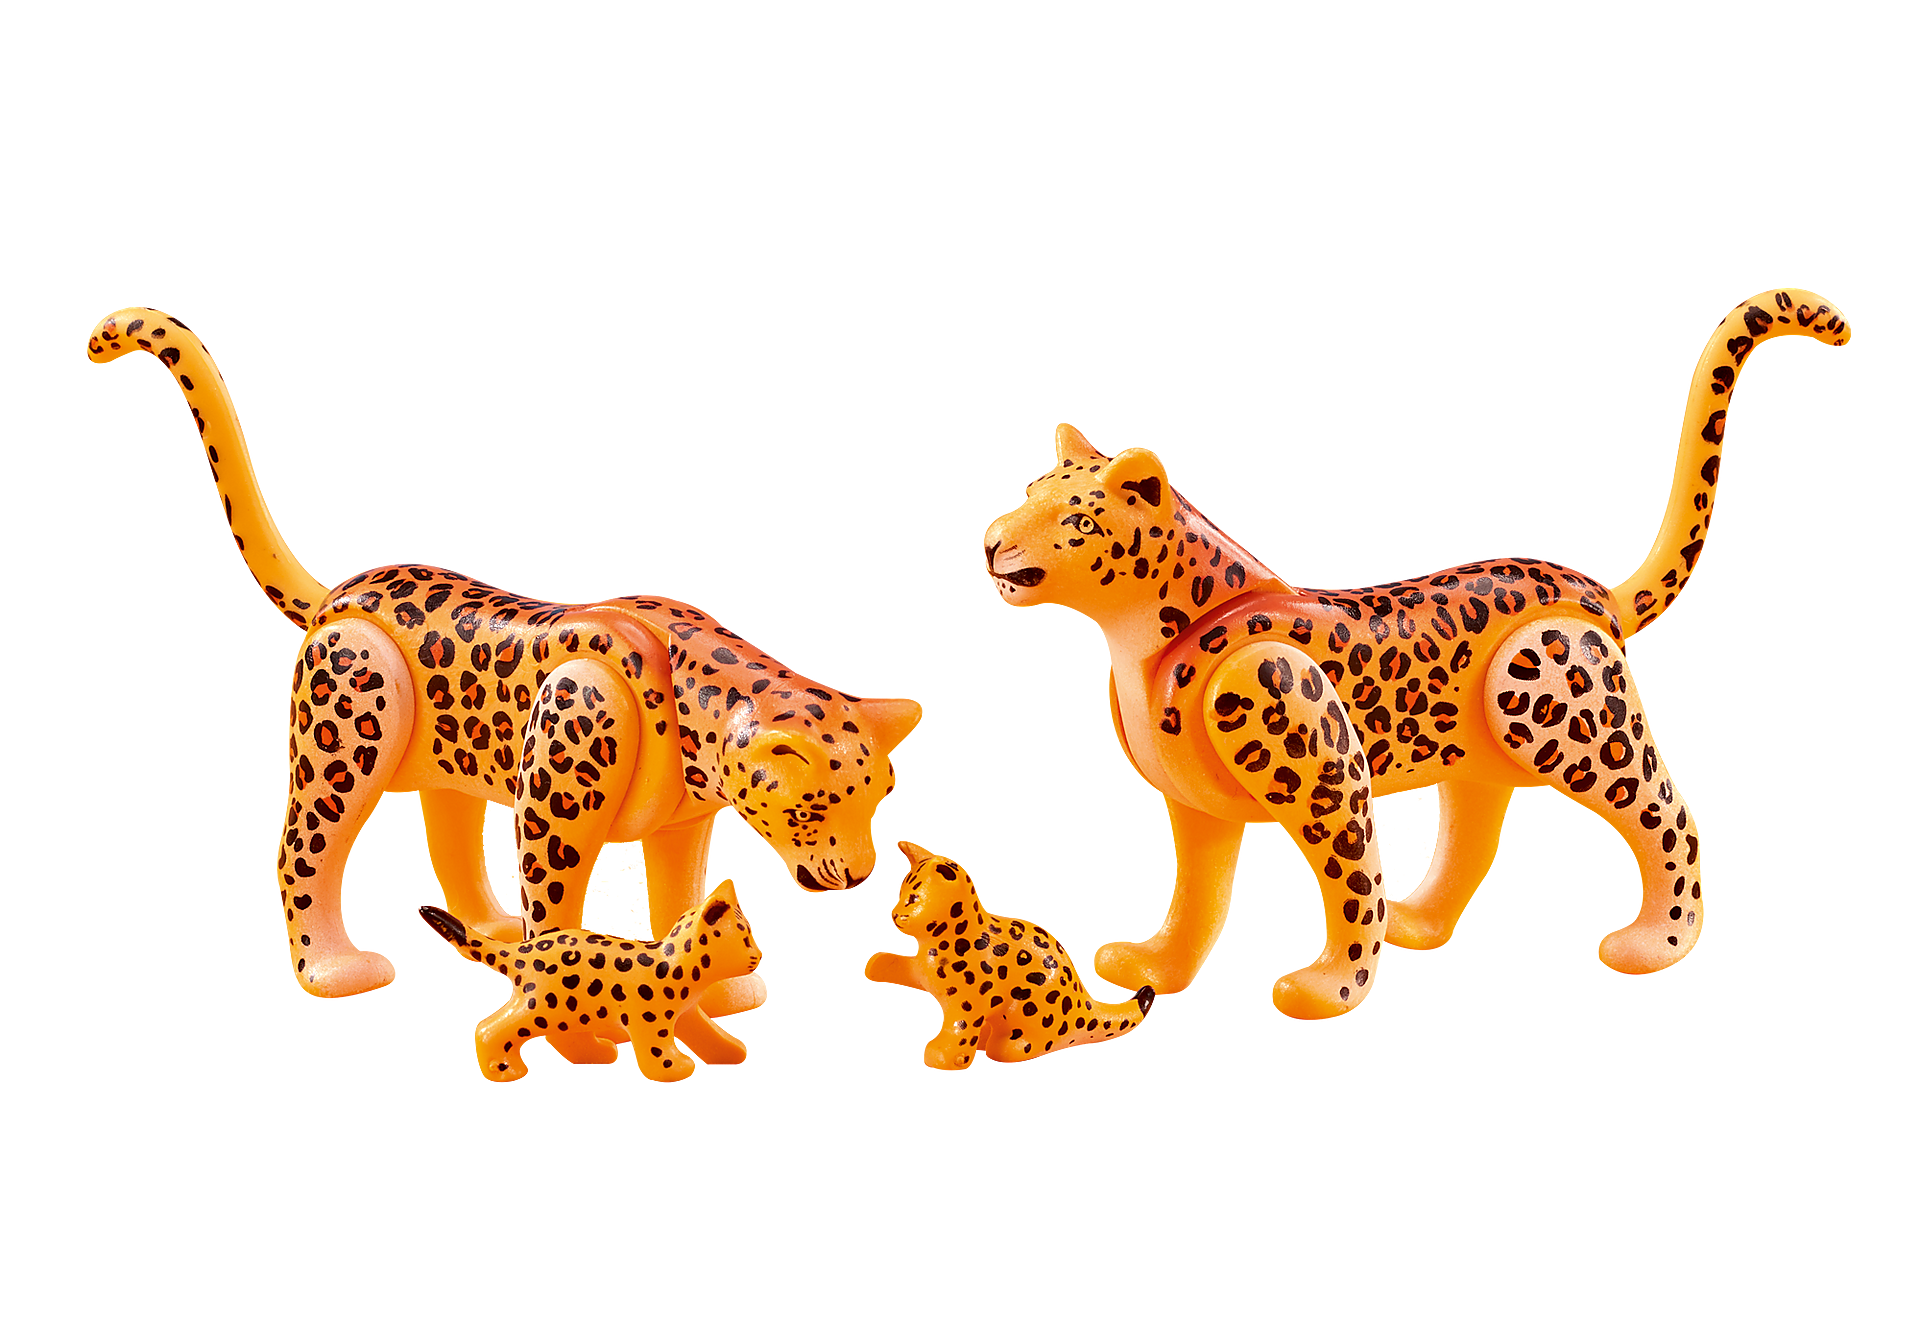 6539 Leopard Family zoom image1